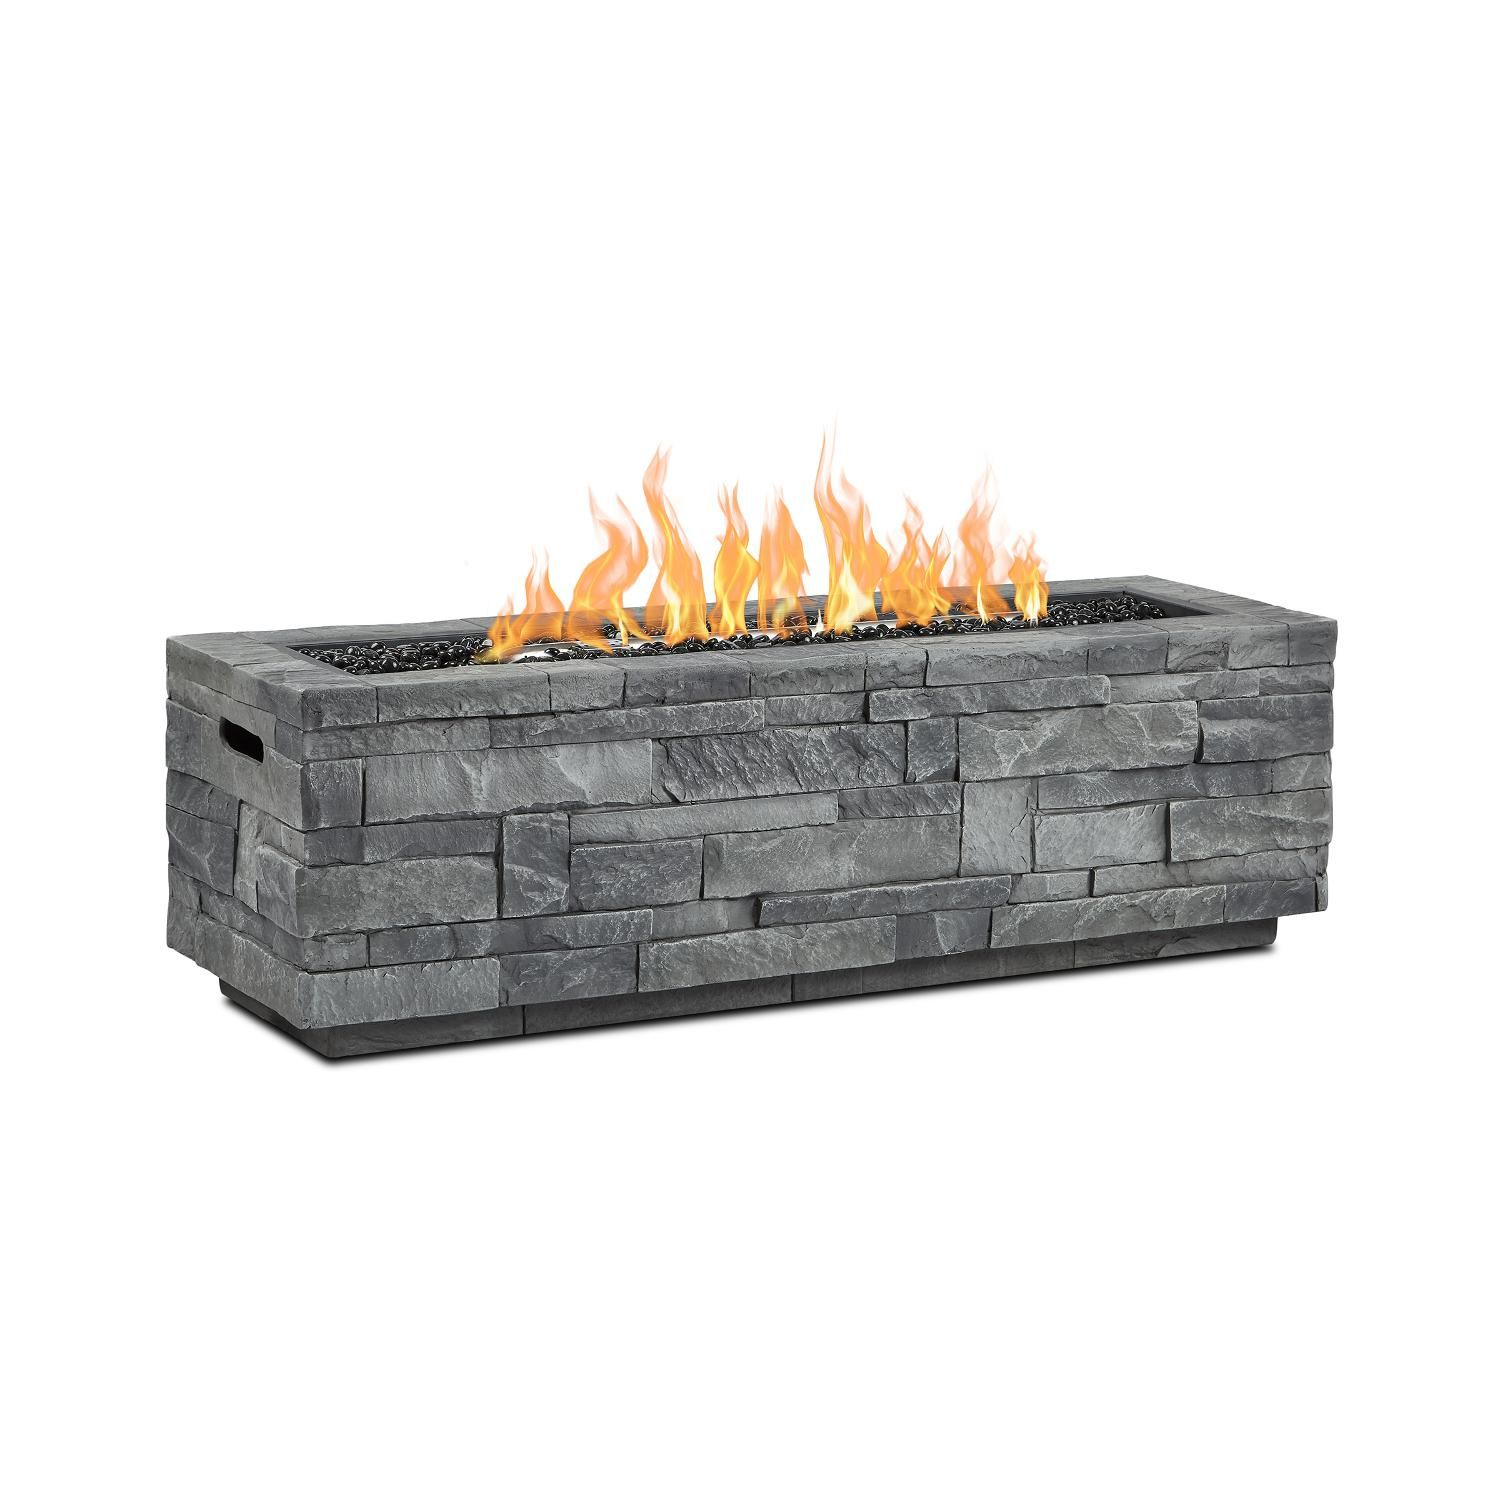 f4ca24ed36cba4e96593510d0bdc47fc - Better Homes And Gardens 48 Rectangle Fire Pit Gas